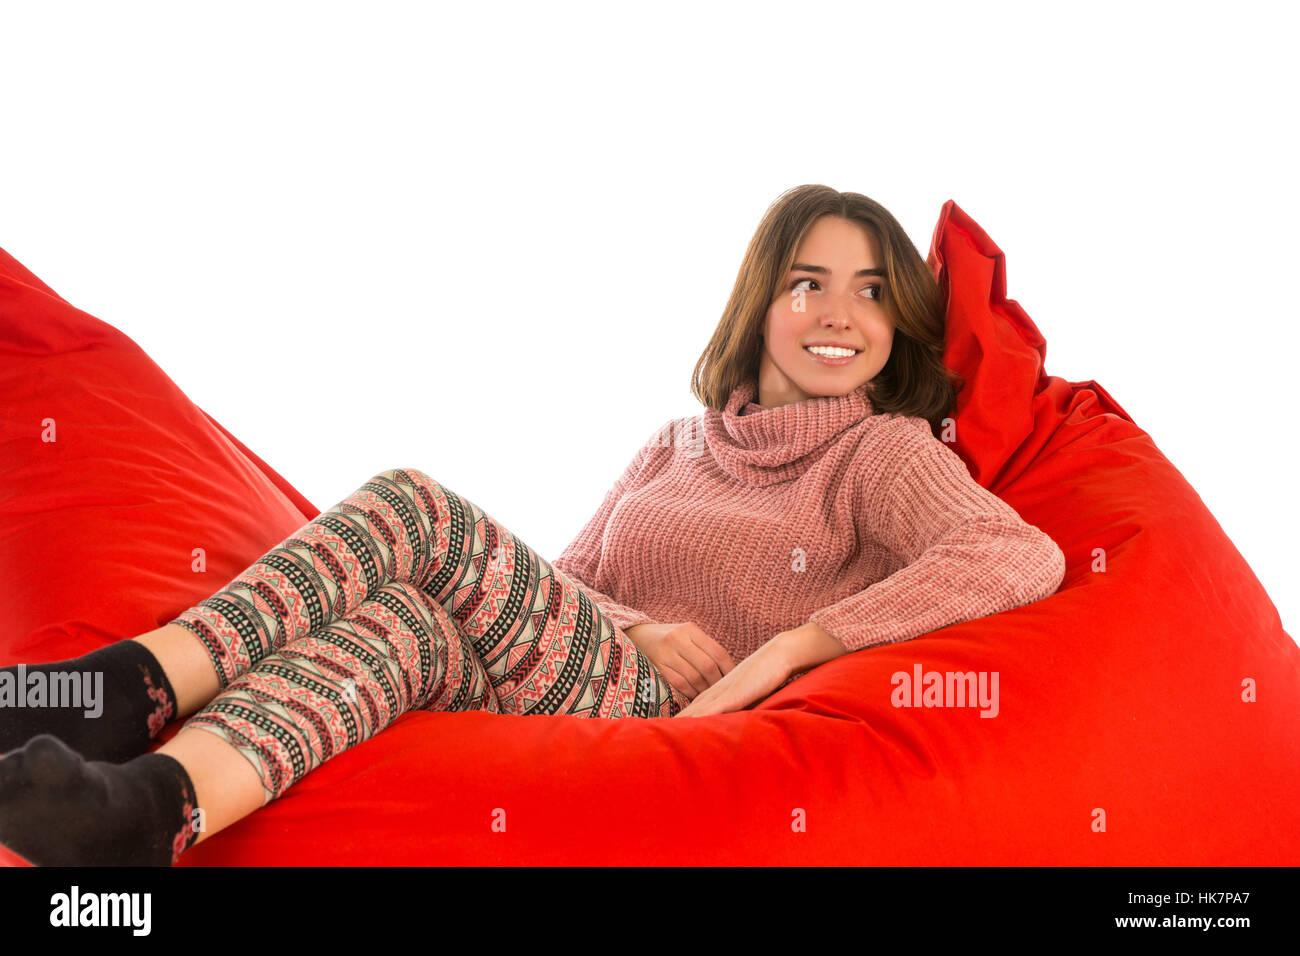 Young woman lying on red square shaped beanbag sofa chair for living room or other room isolated on white background - Stock Image